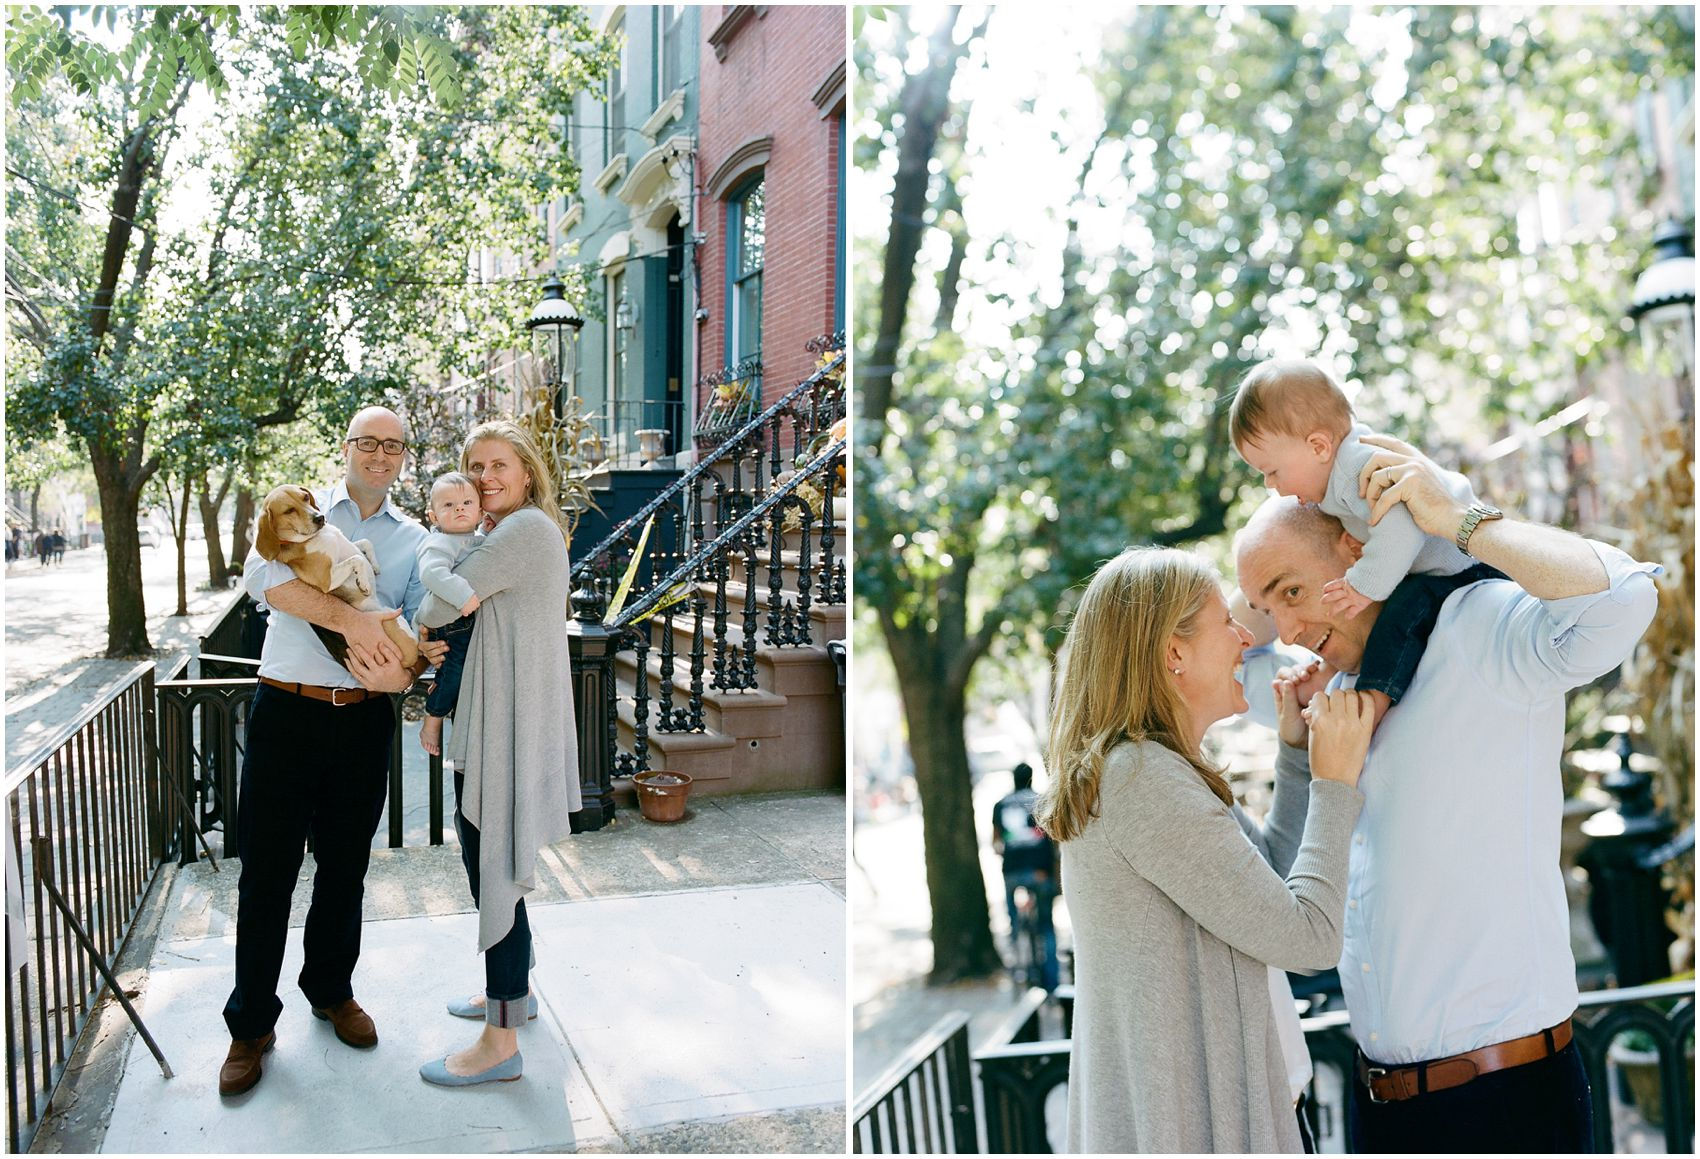 mom and dad laughing at the family portrait with the dog and the baby in NYC